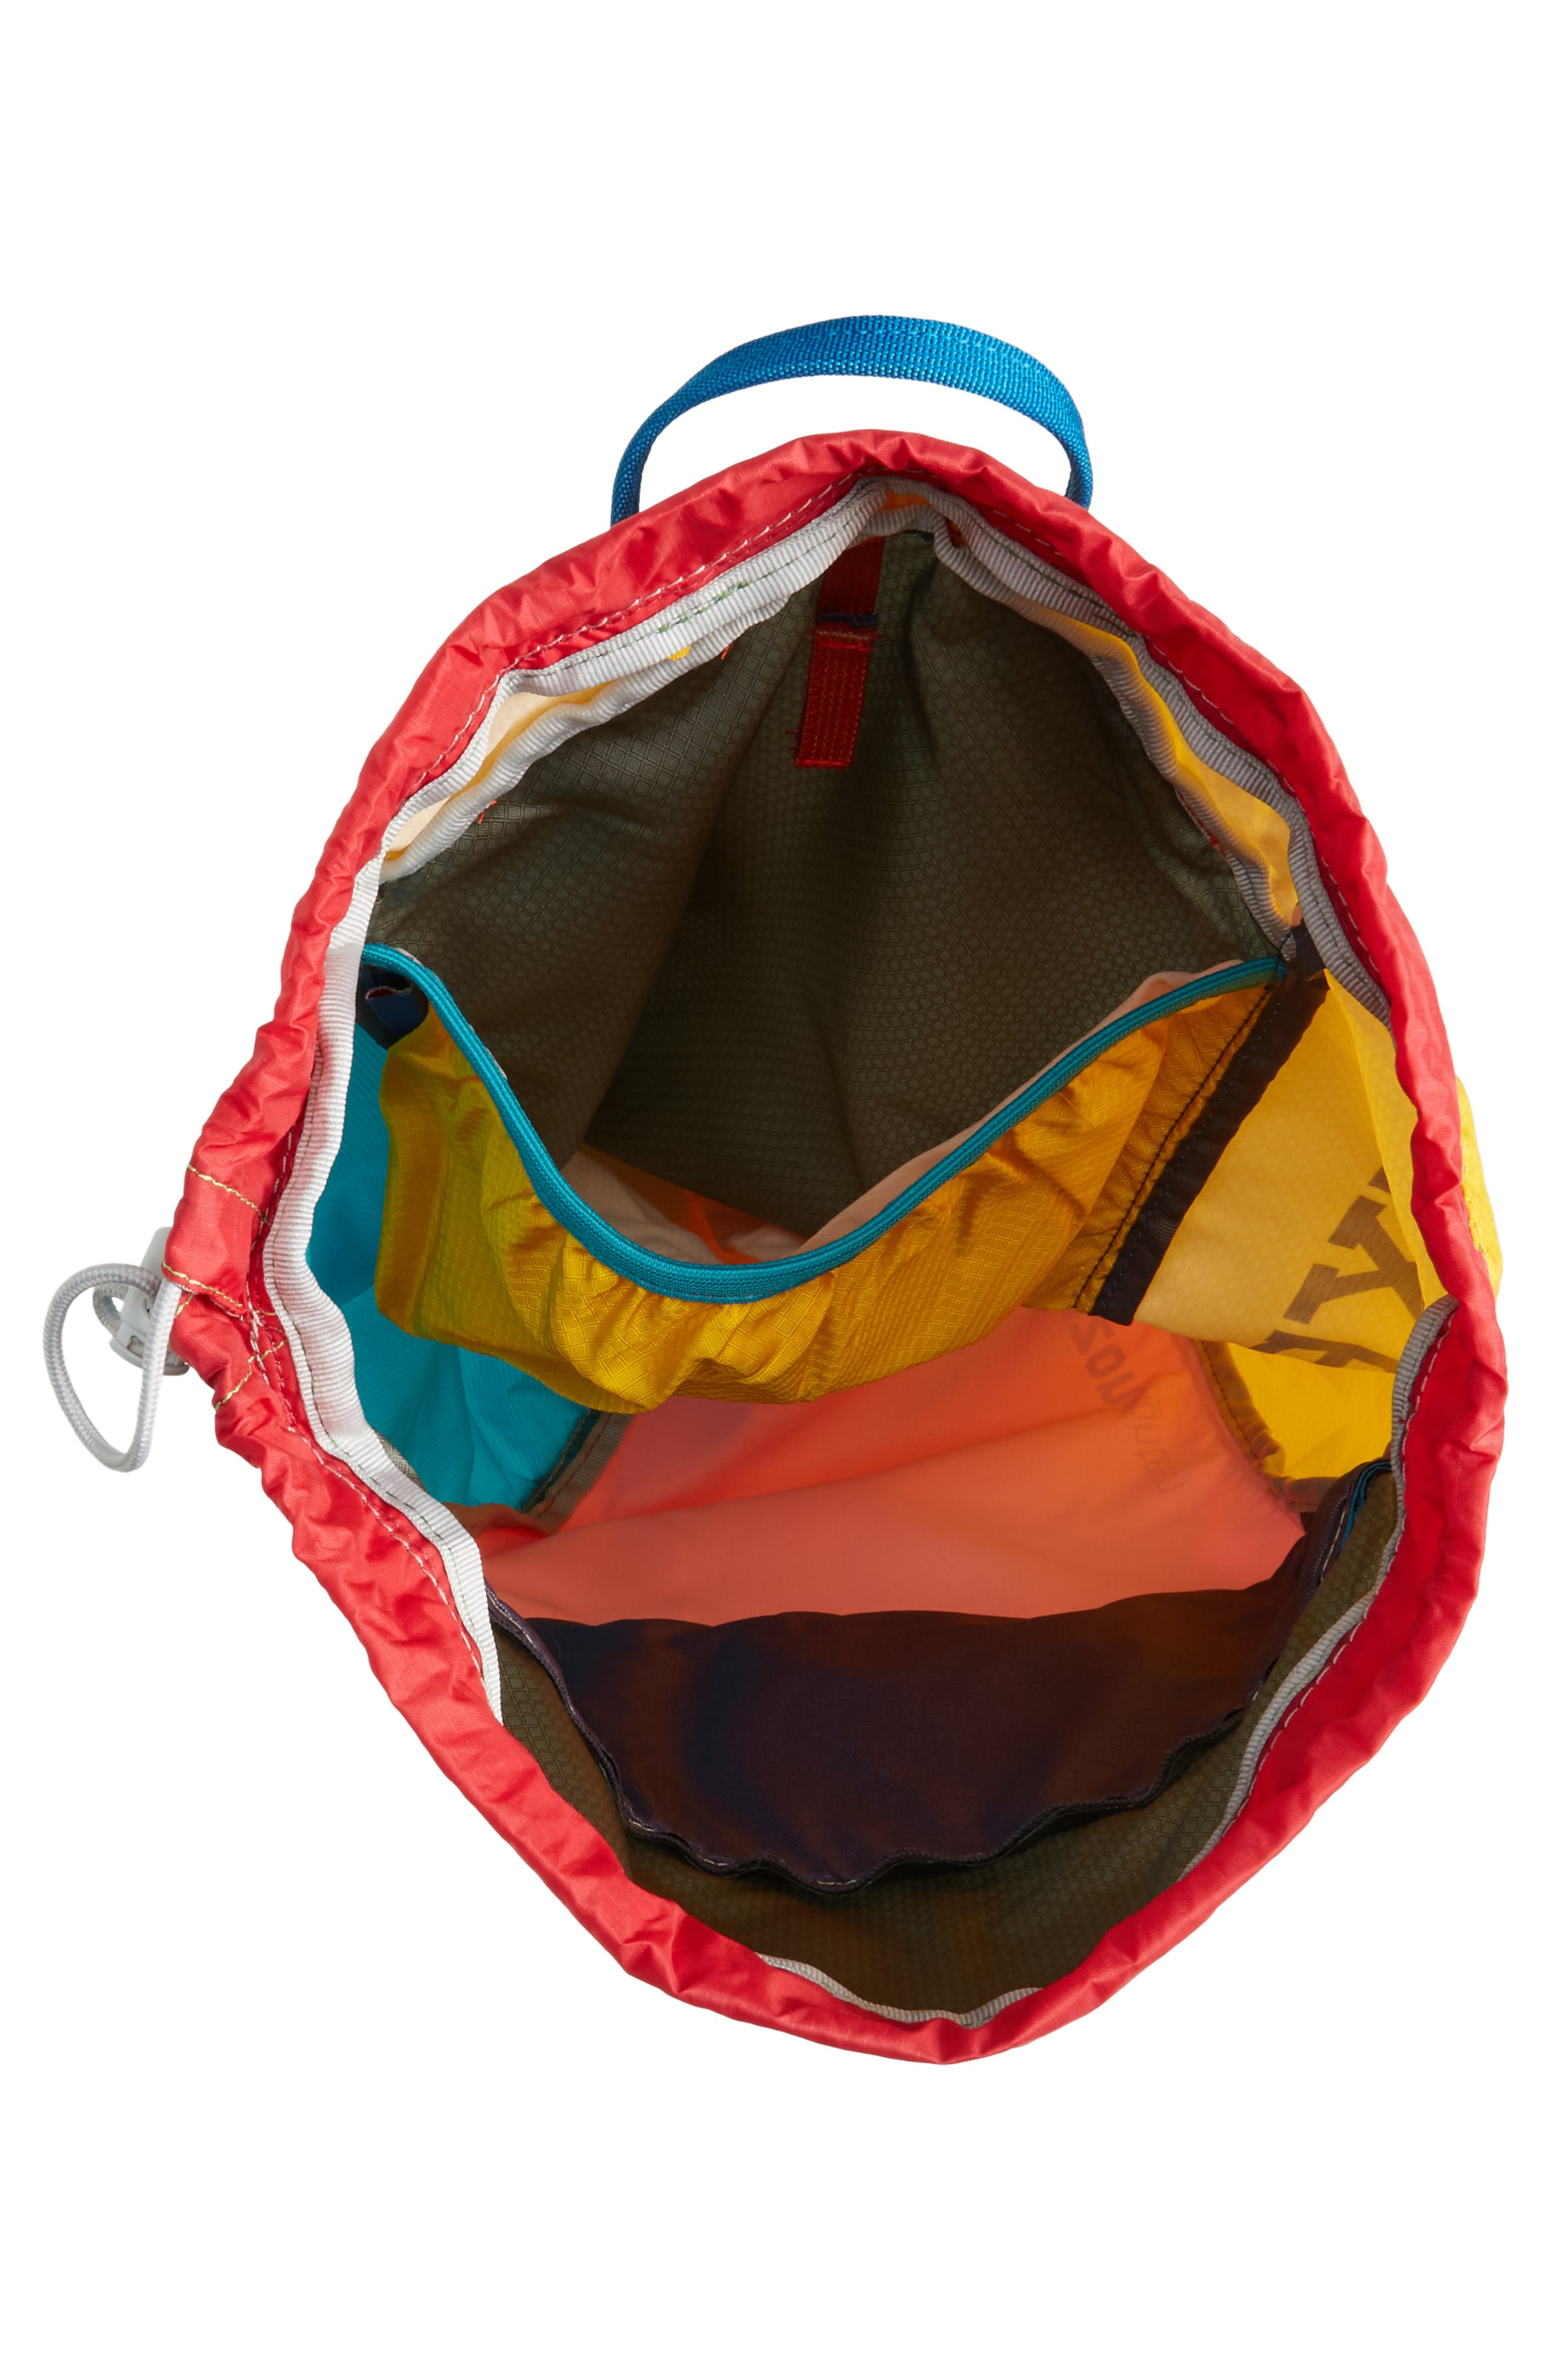 Luzon Del Día One of a Kind Ripstop Nylon Daypack,                             Alternate thumbnail 4, color,                             ASSORTED